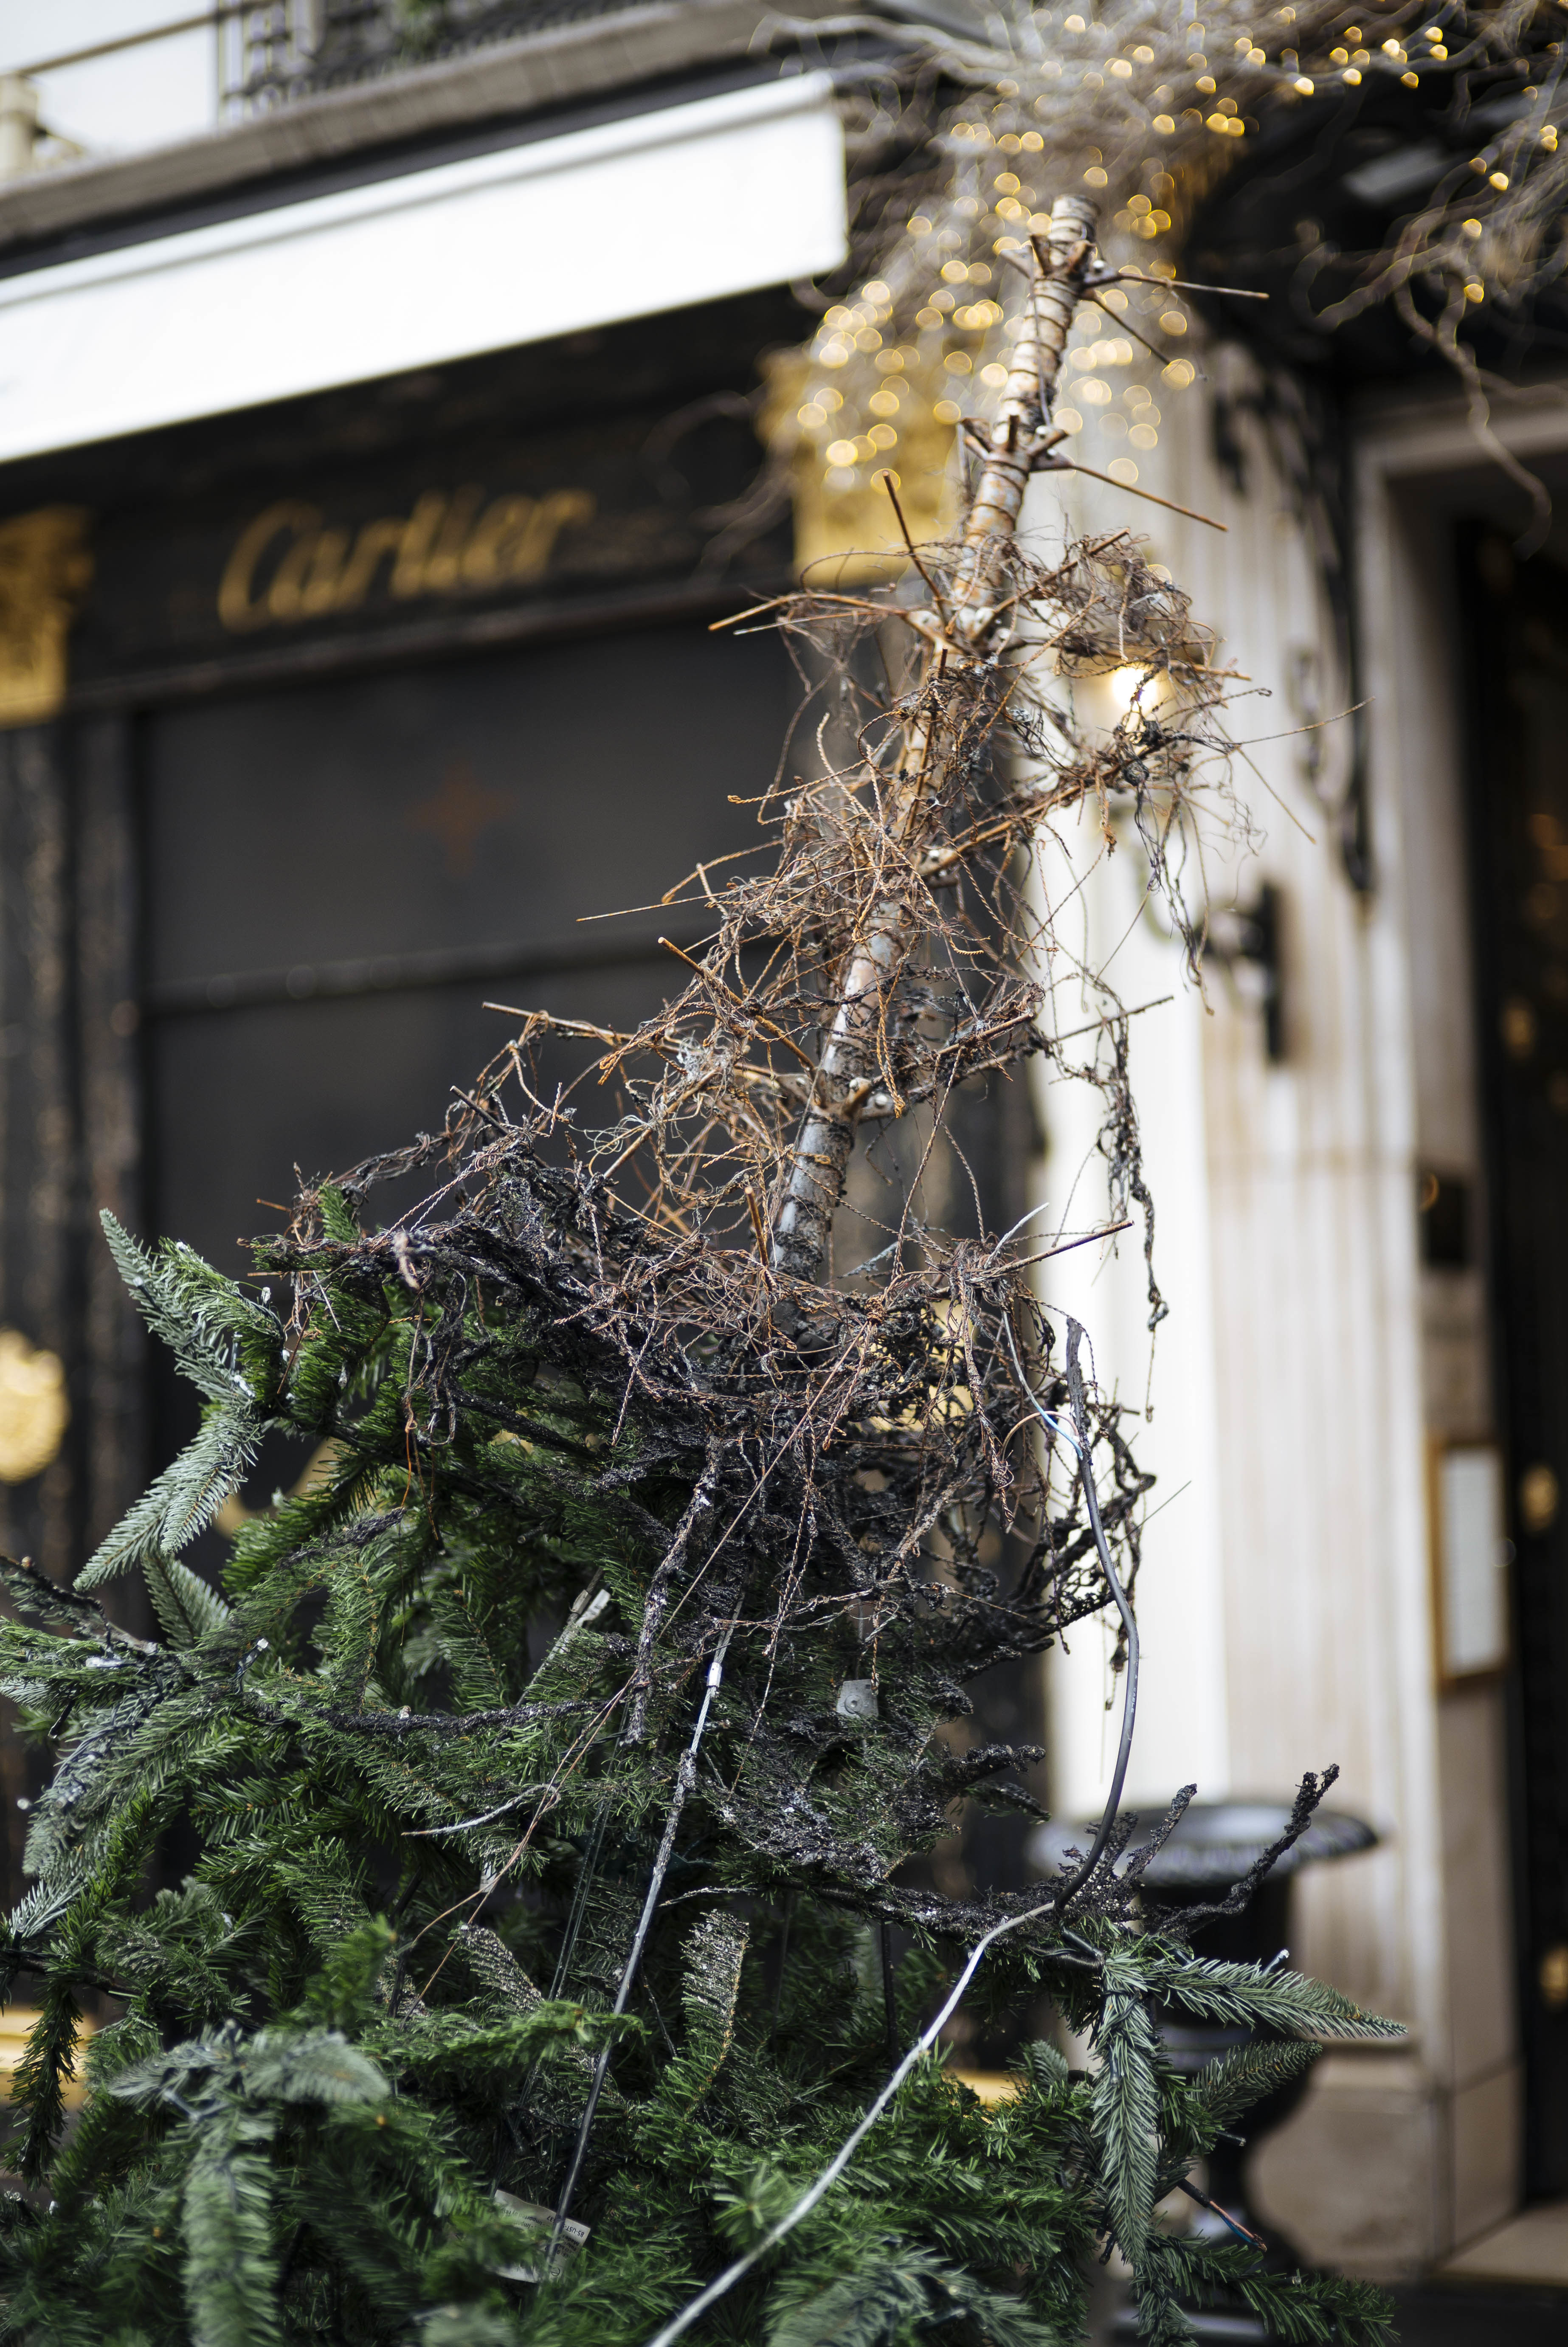 A half burned Christmas tree is seen on the Vendome plaza in Paris, Sunday, Dec. 2, 2018. A protest against rising taxes and the high cost of living turned into a riot in the French capital Saturday, as activists caused widespread damage and tagged the Arc de Triomphe with multi-colored graffiti during clashes with police. (AP Photo/Kamil Zihnioglu)